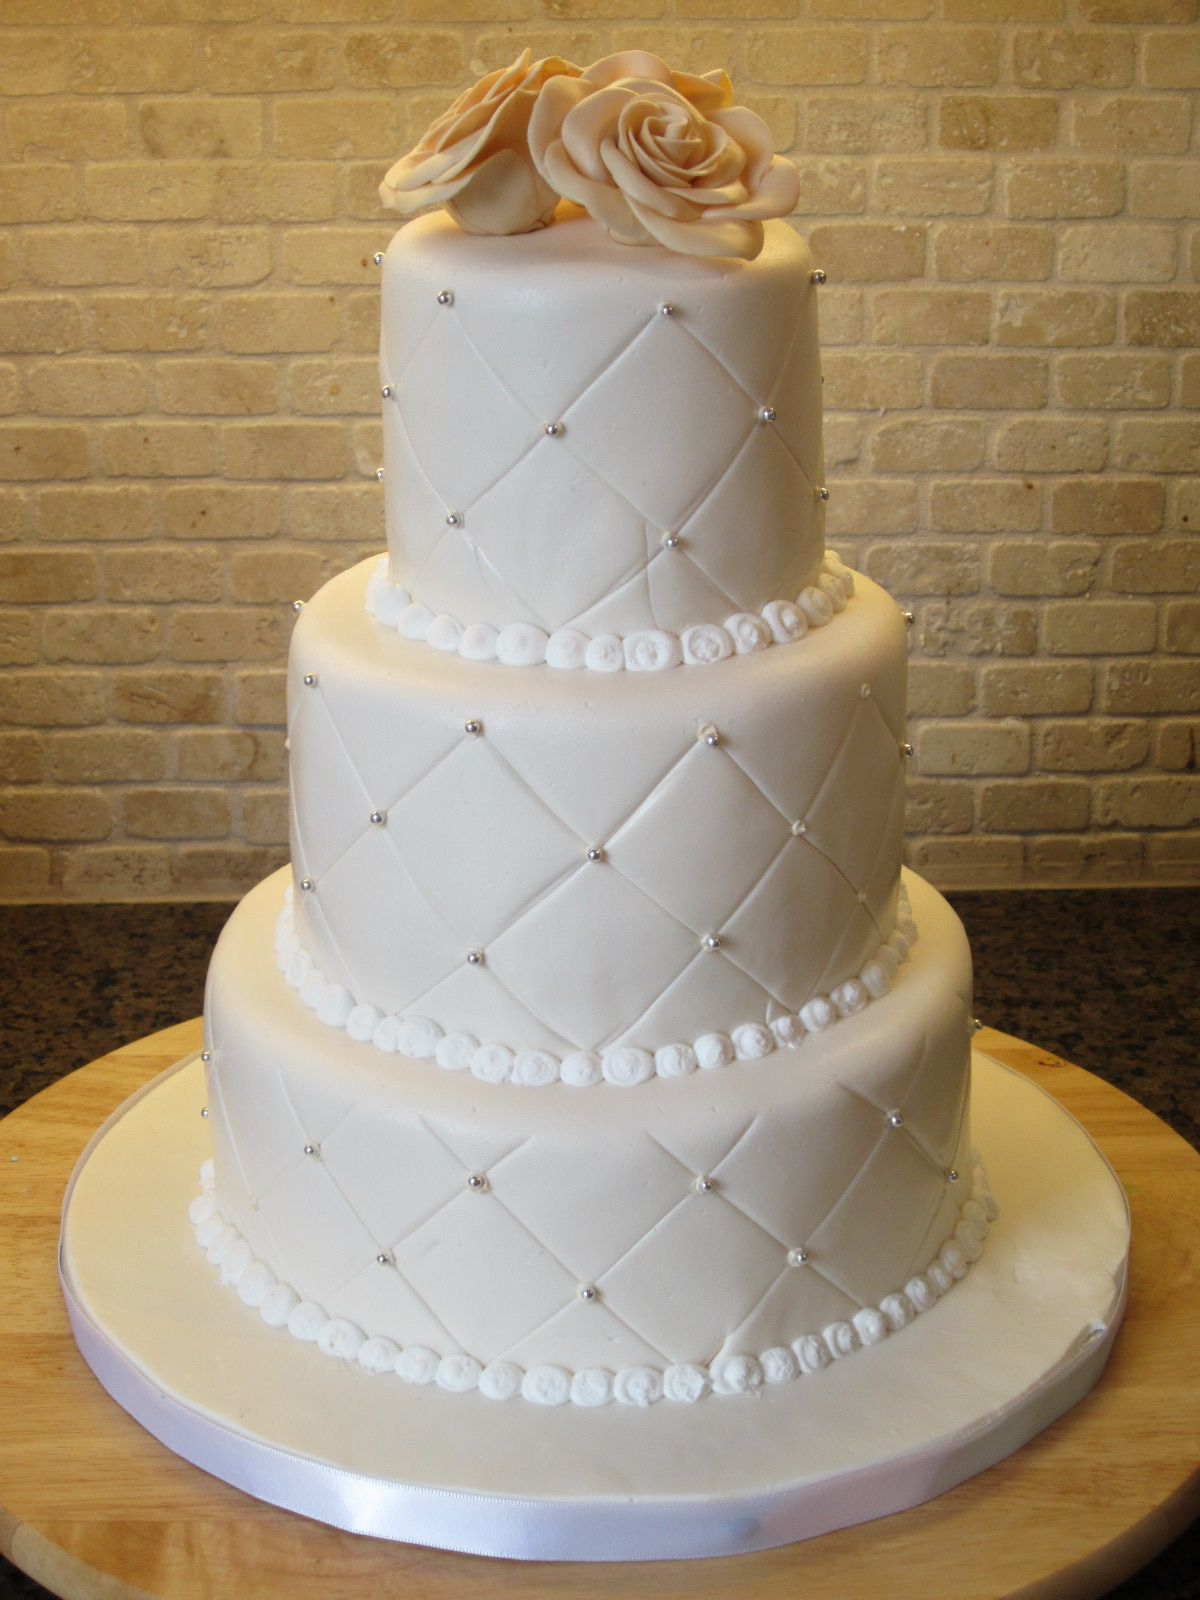 Quilt Pattern Wedding Cake : I like the pearls and the quilt pattern Cakes, Cakes, Cakes, & More?